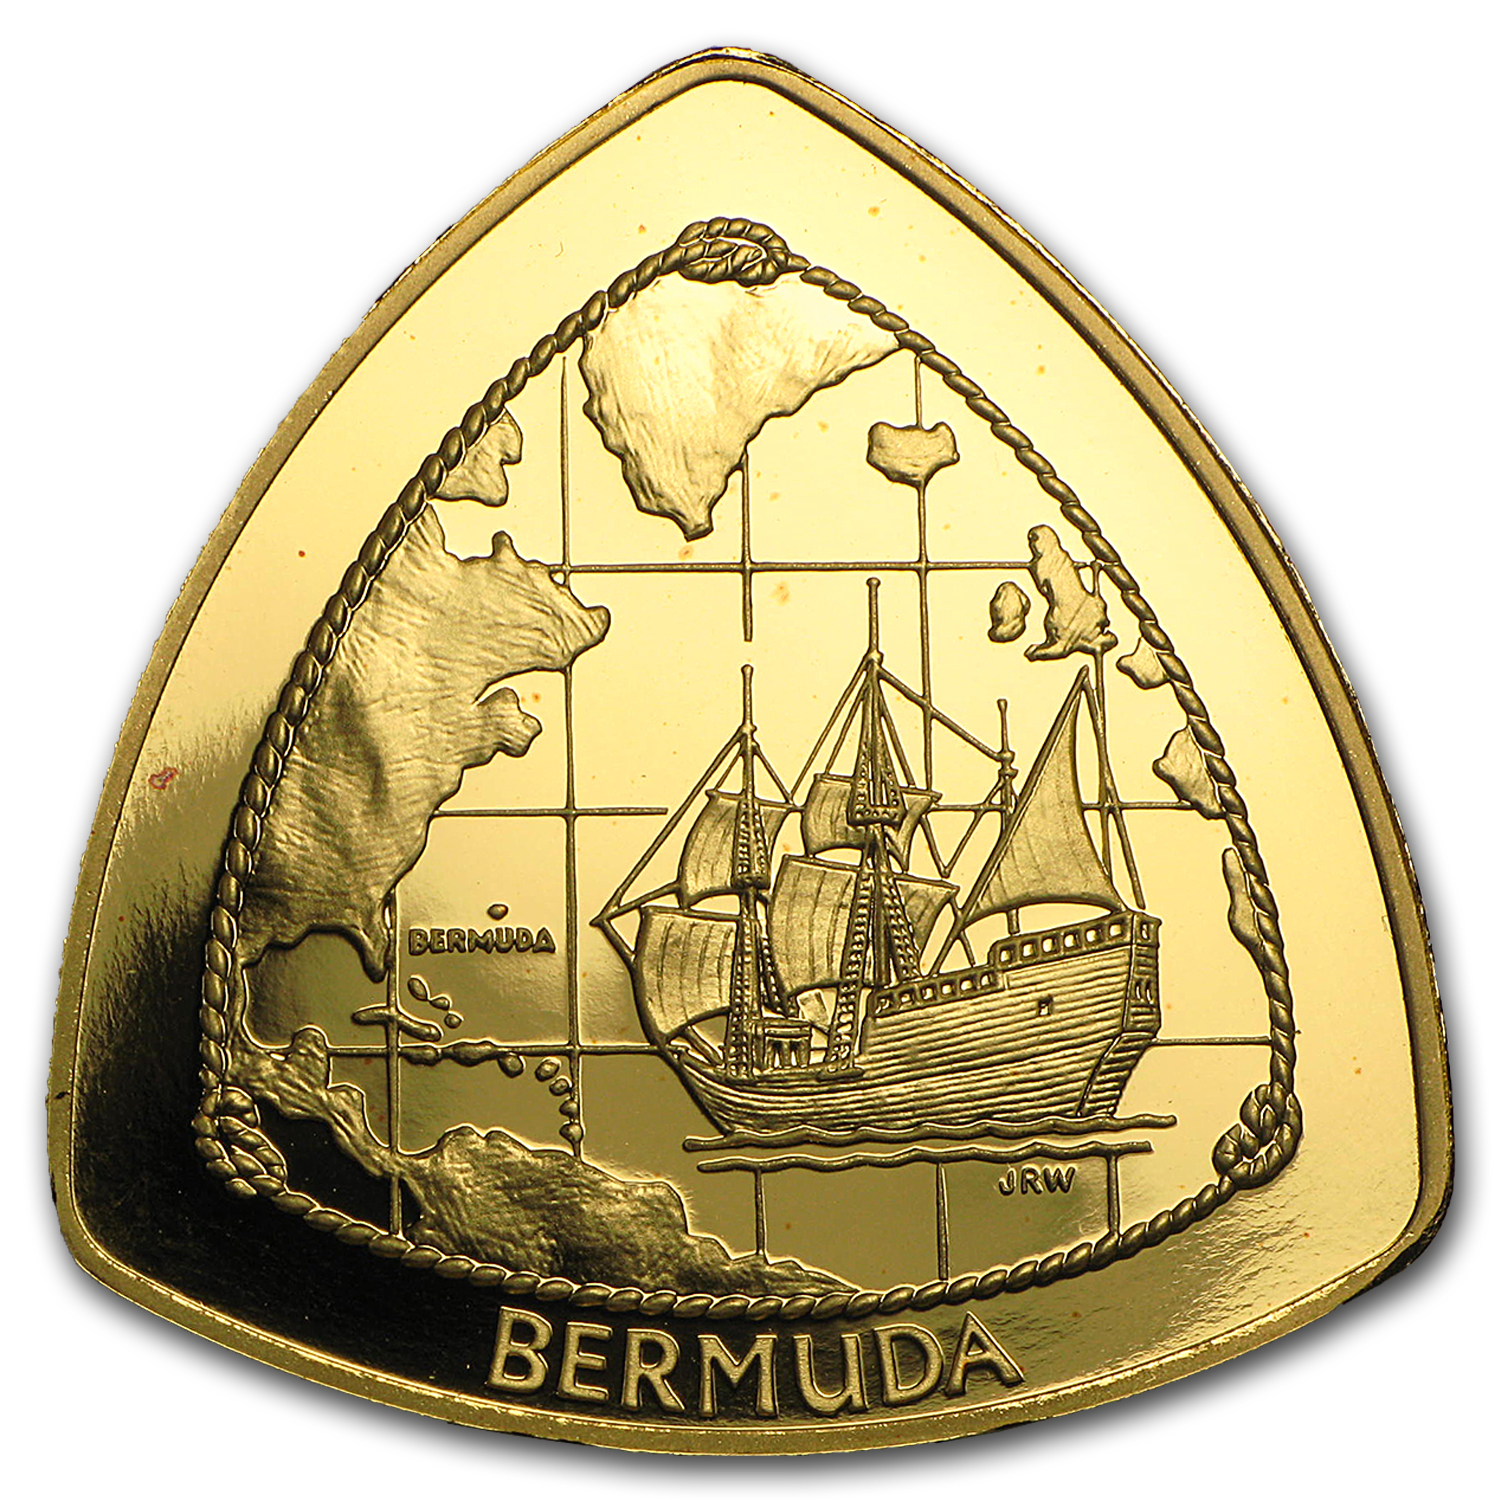 Bermuda 1998 Triangle 1oz Gold Coin. (Proof)